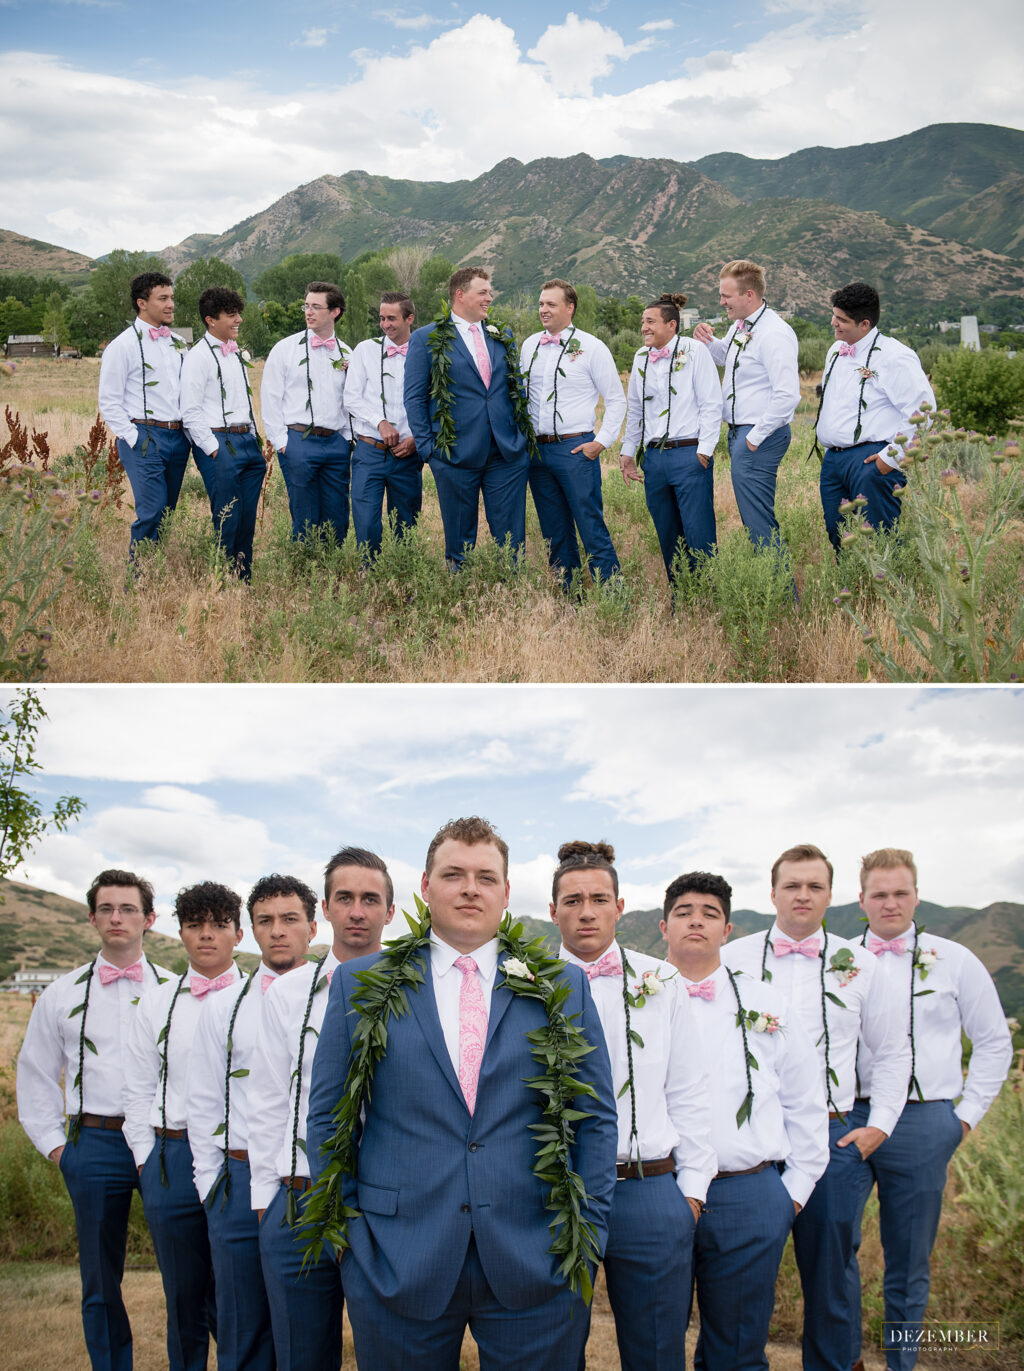 The groomsmen stand behind the groom